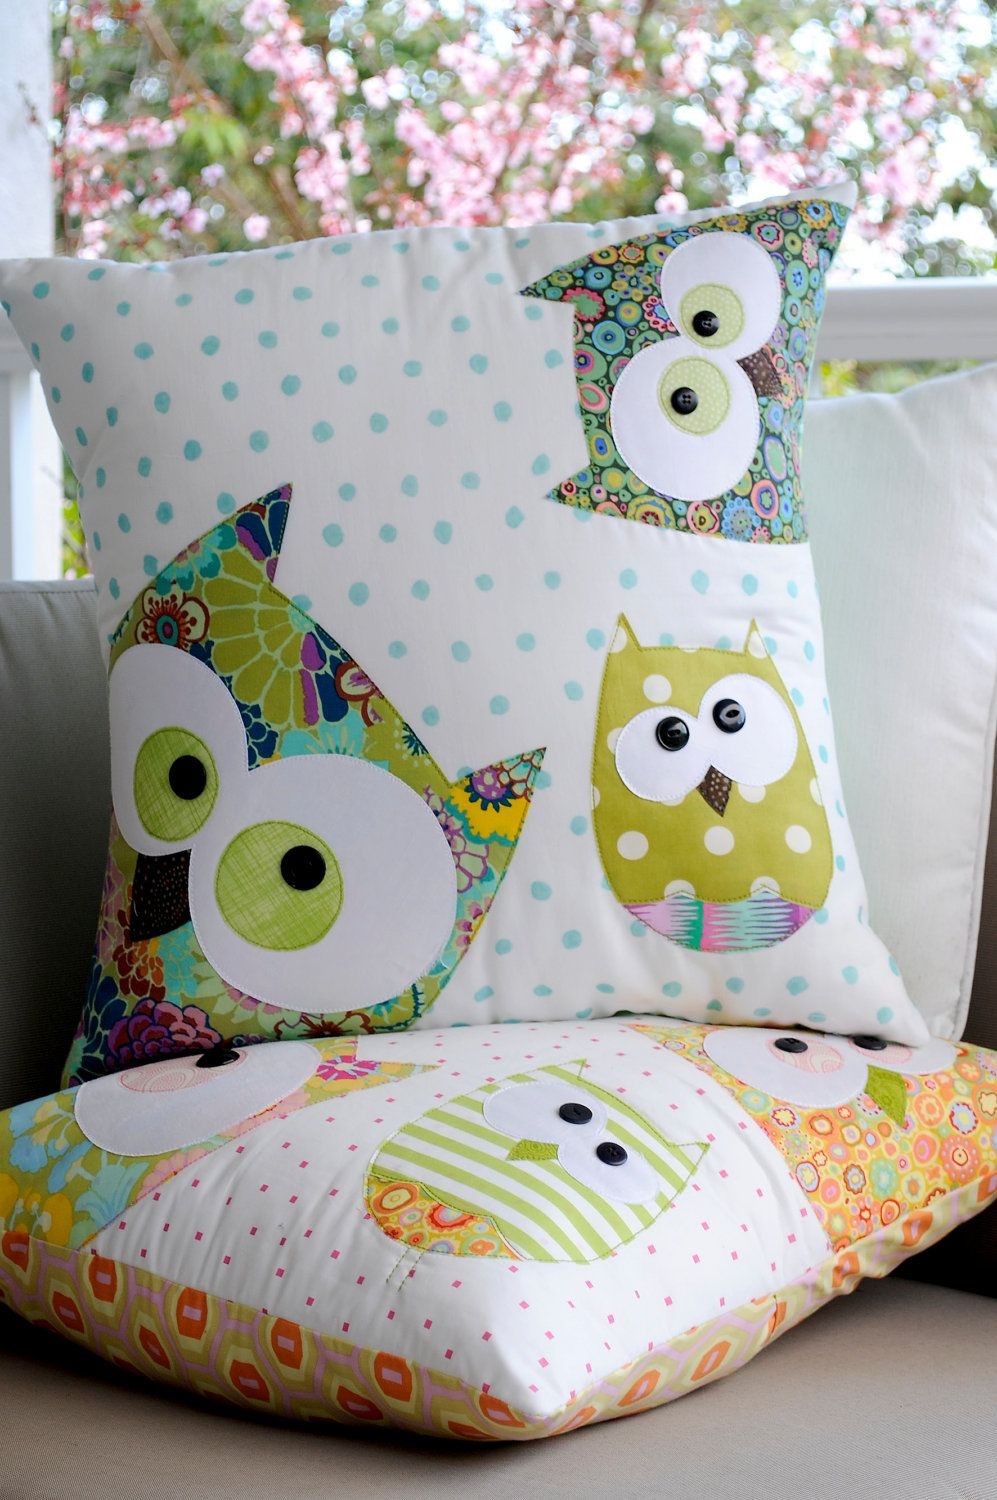 A family of owls applique cushion pattern from claire turpins a family of owls applique cushion pattern by claireturpindesign i rarely have the urge to sew anything but something about this makes me say i want jeuxipadfo Image collections